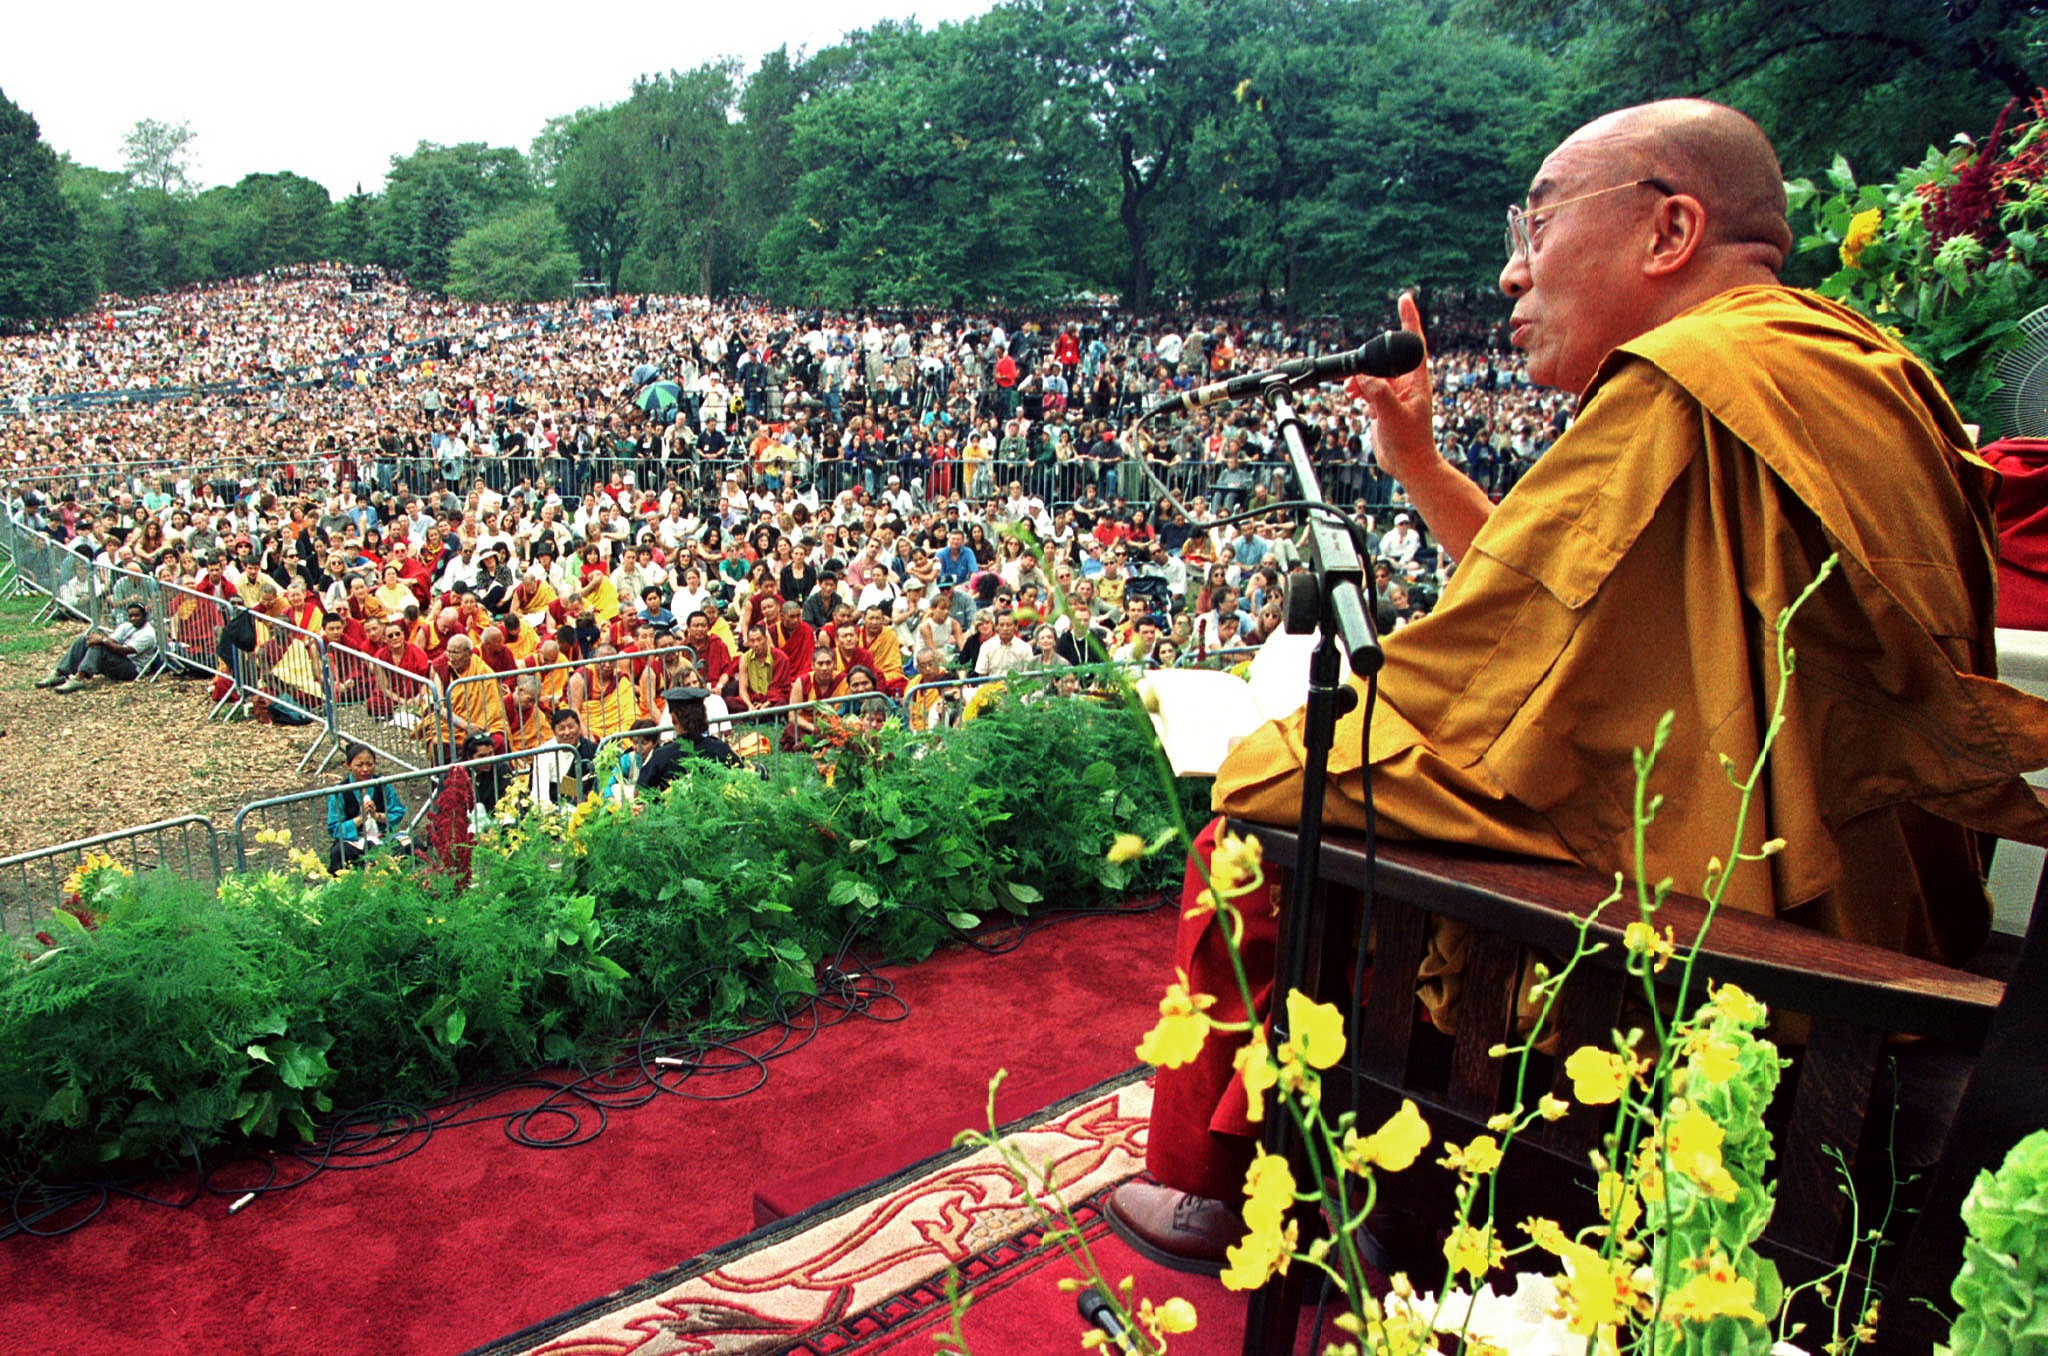 The Dalai Lama, speaks to a crowd in Central Park